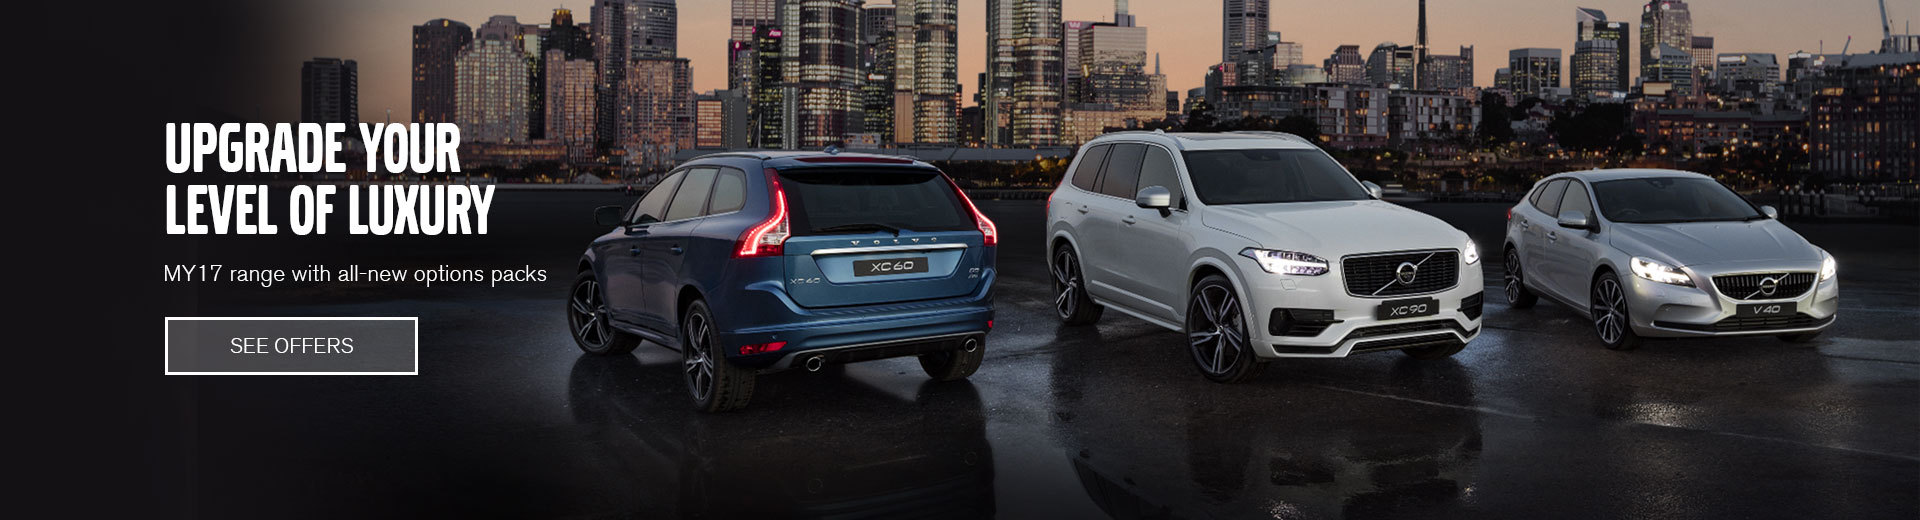 The New Model Year 17 Range Is Here - Mid-Sized XC60 $59,888 Including Driver Su